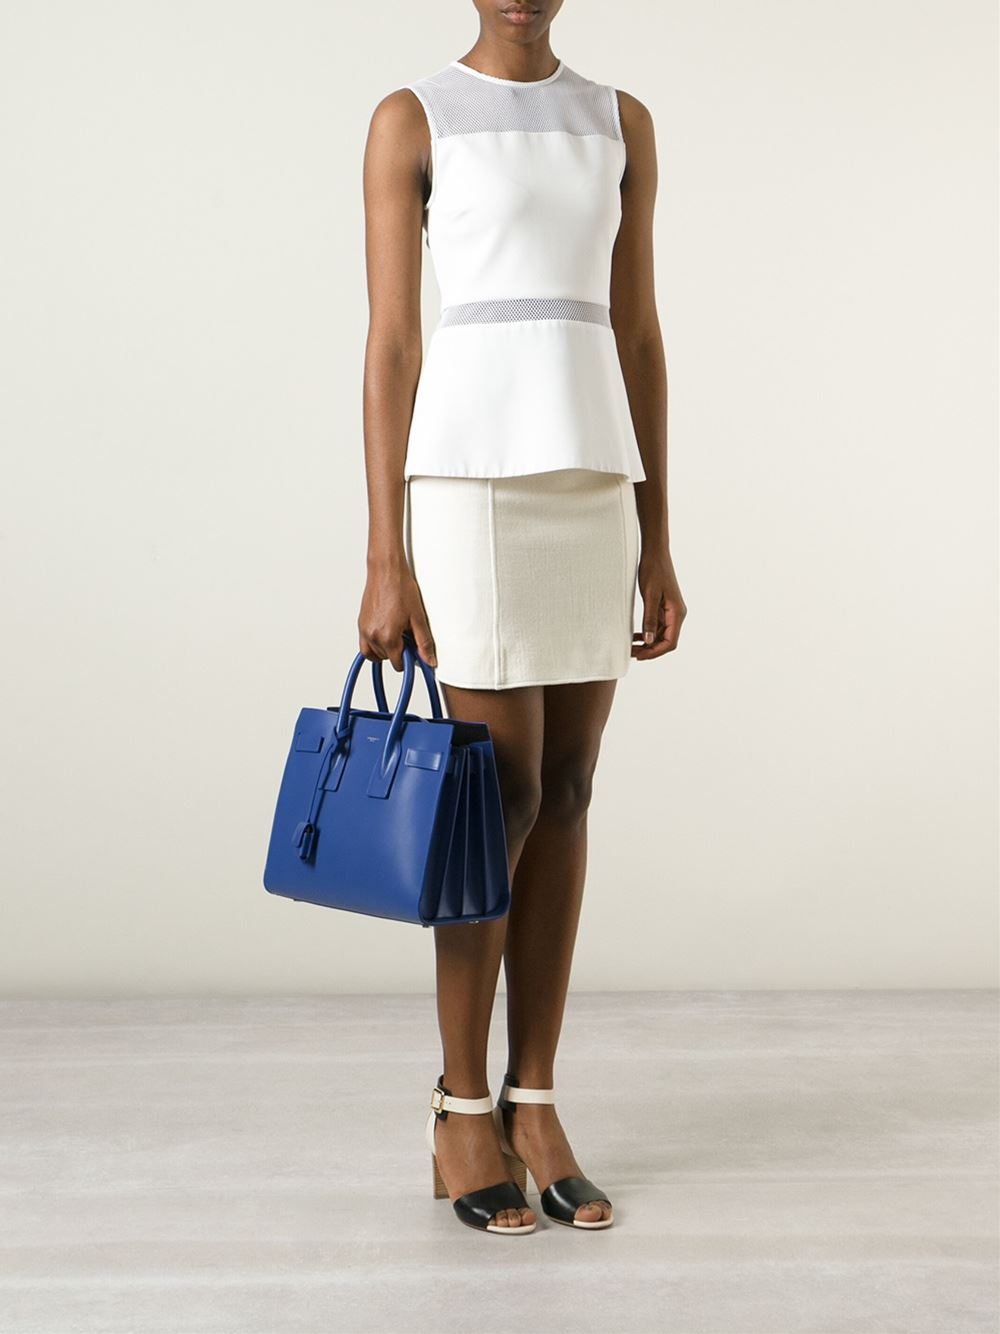 huge shoulder bag - classic small sac de jour bag in royal blue leather